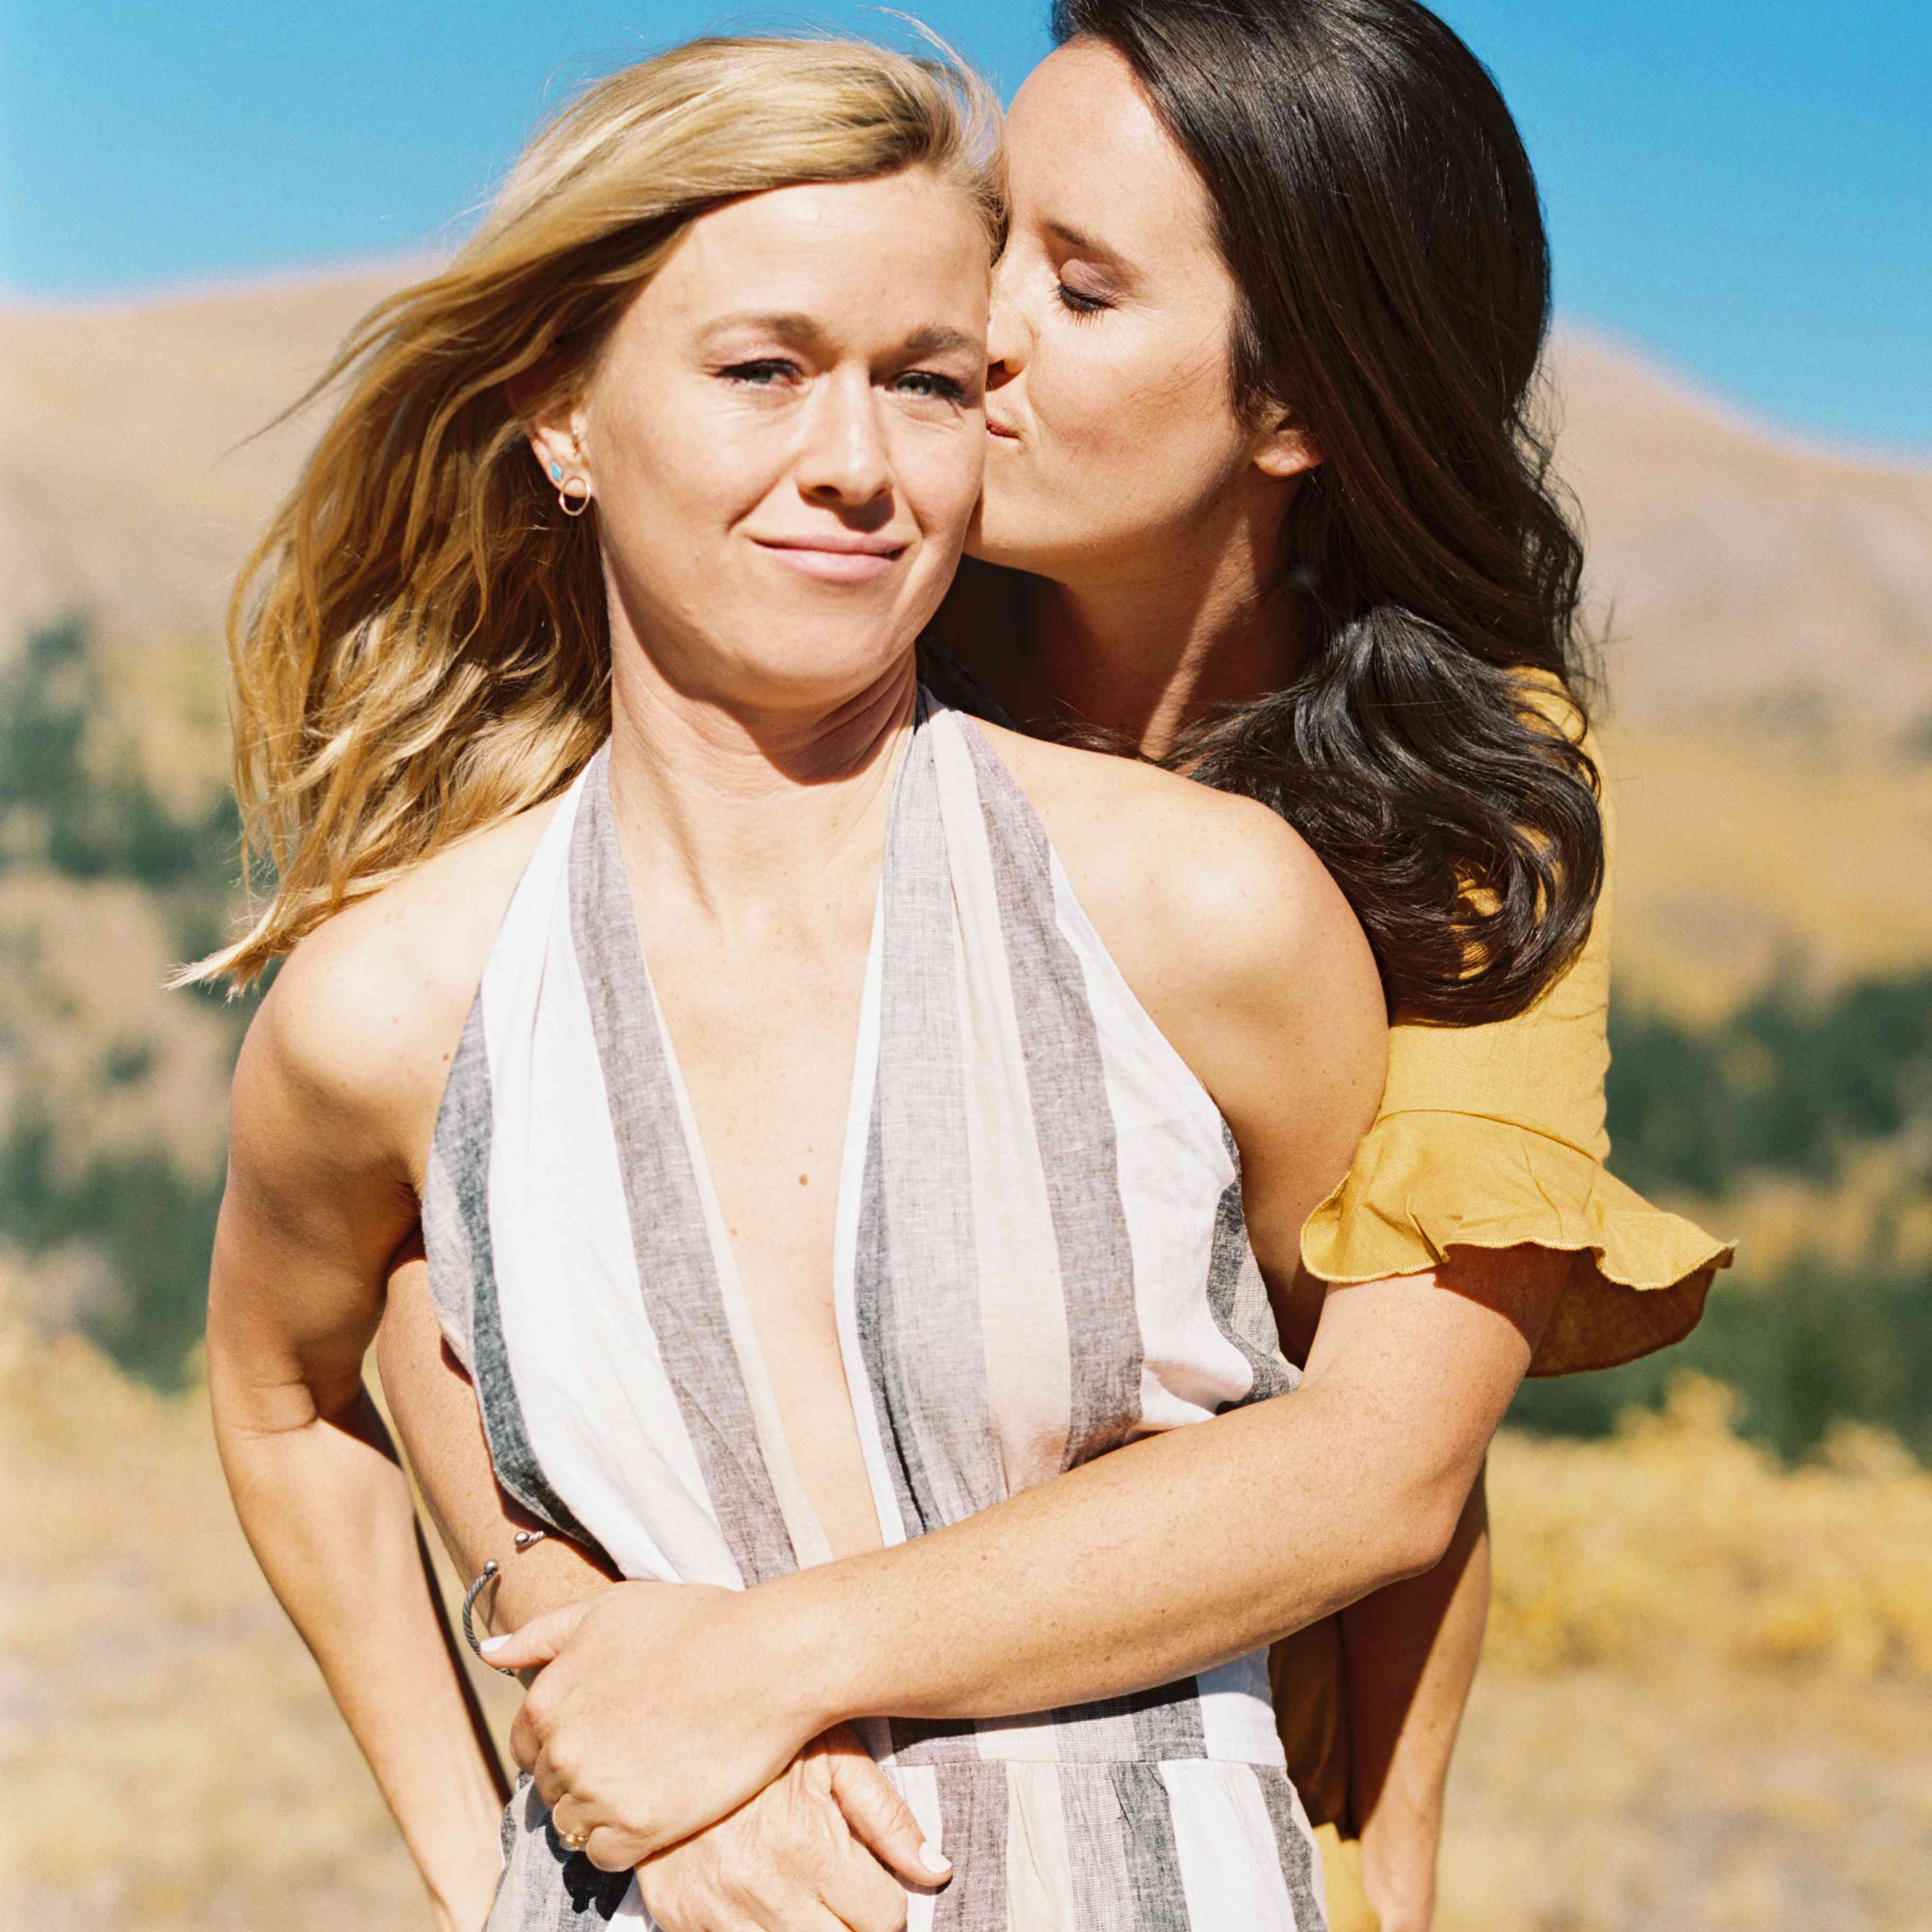 Bride-to-be hugging fiancee and kissing her temple in a desert landscape